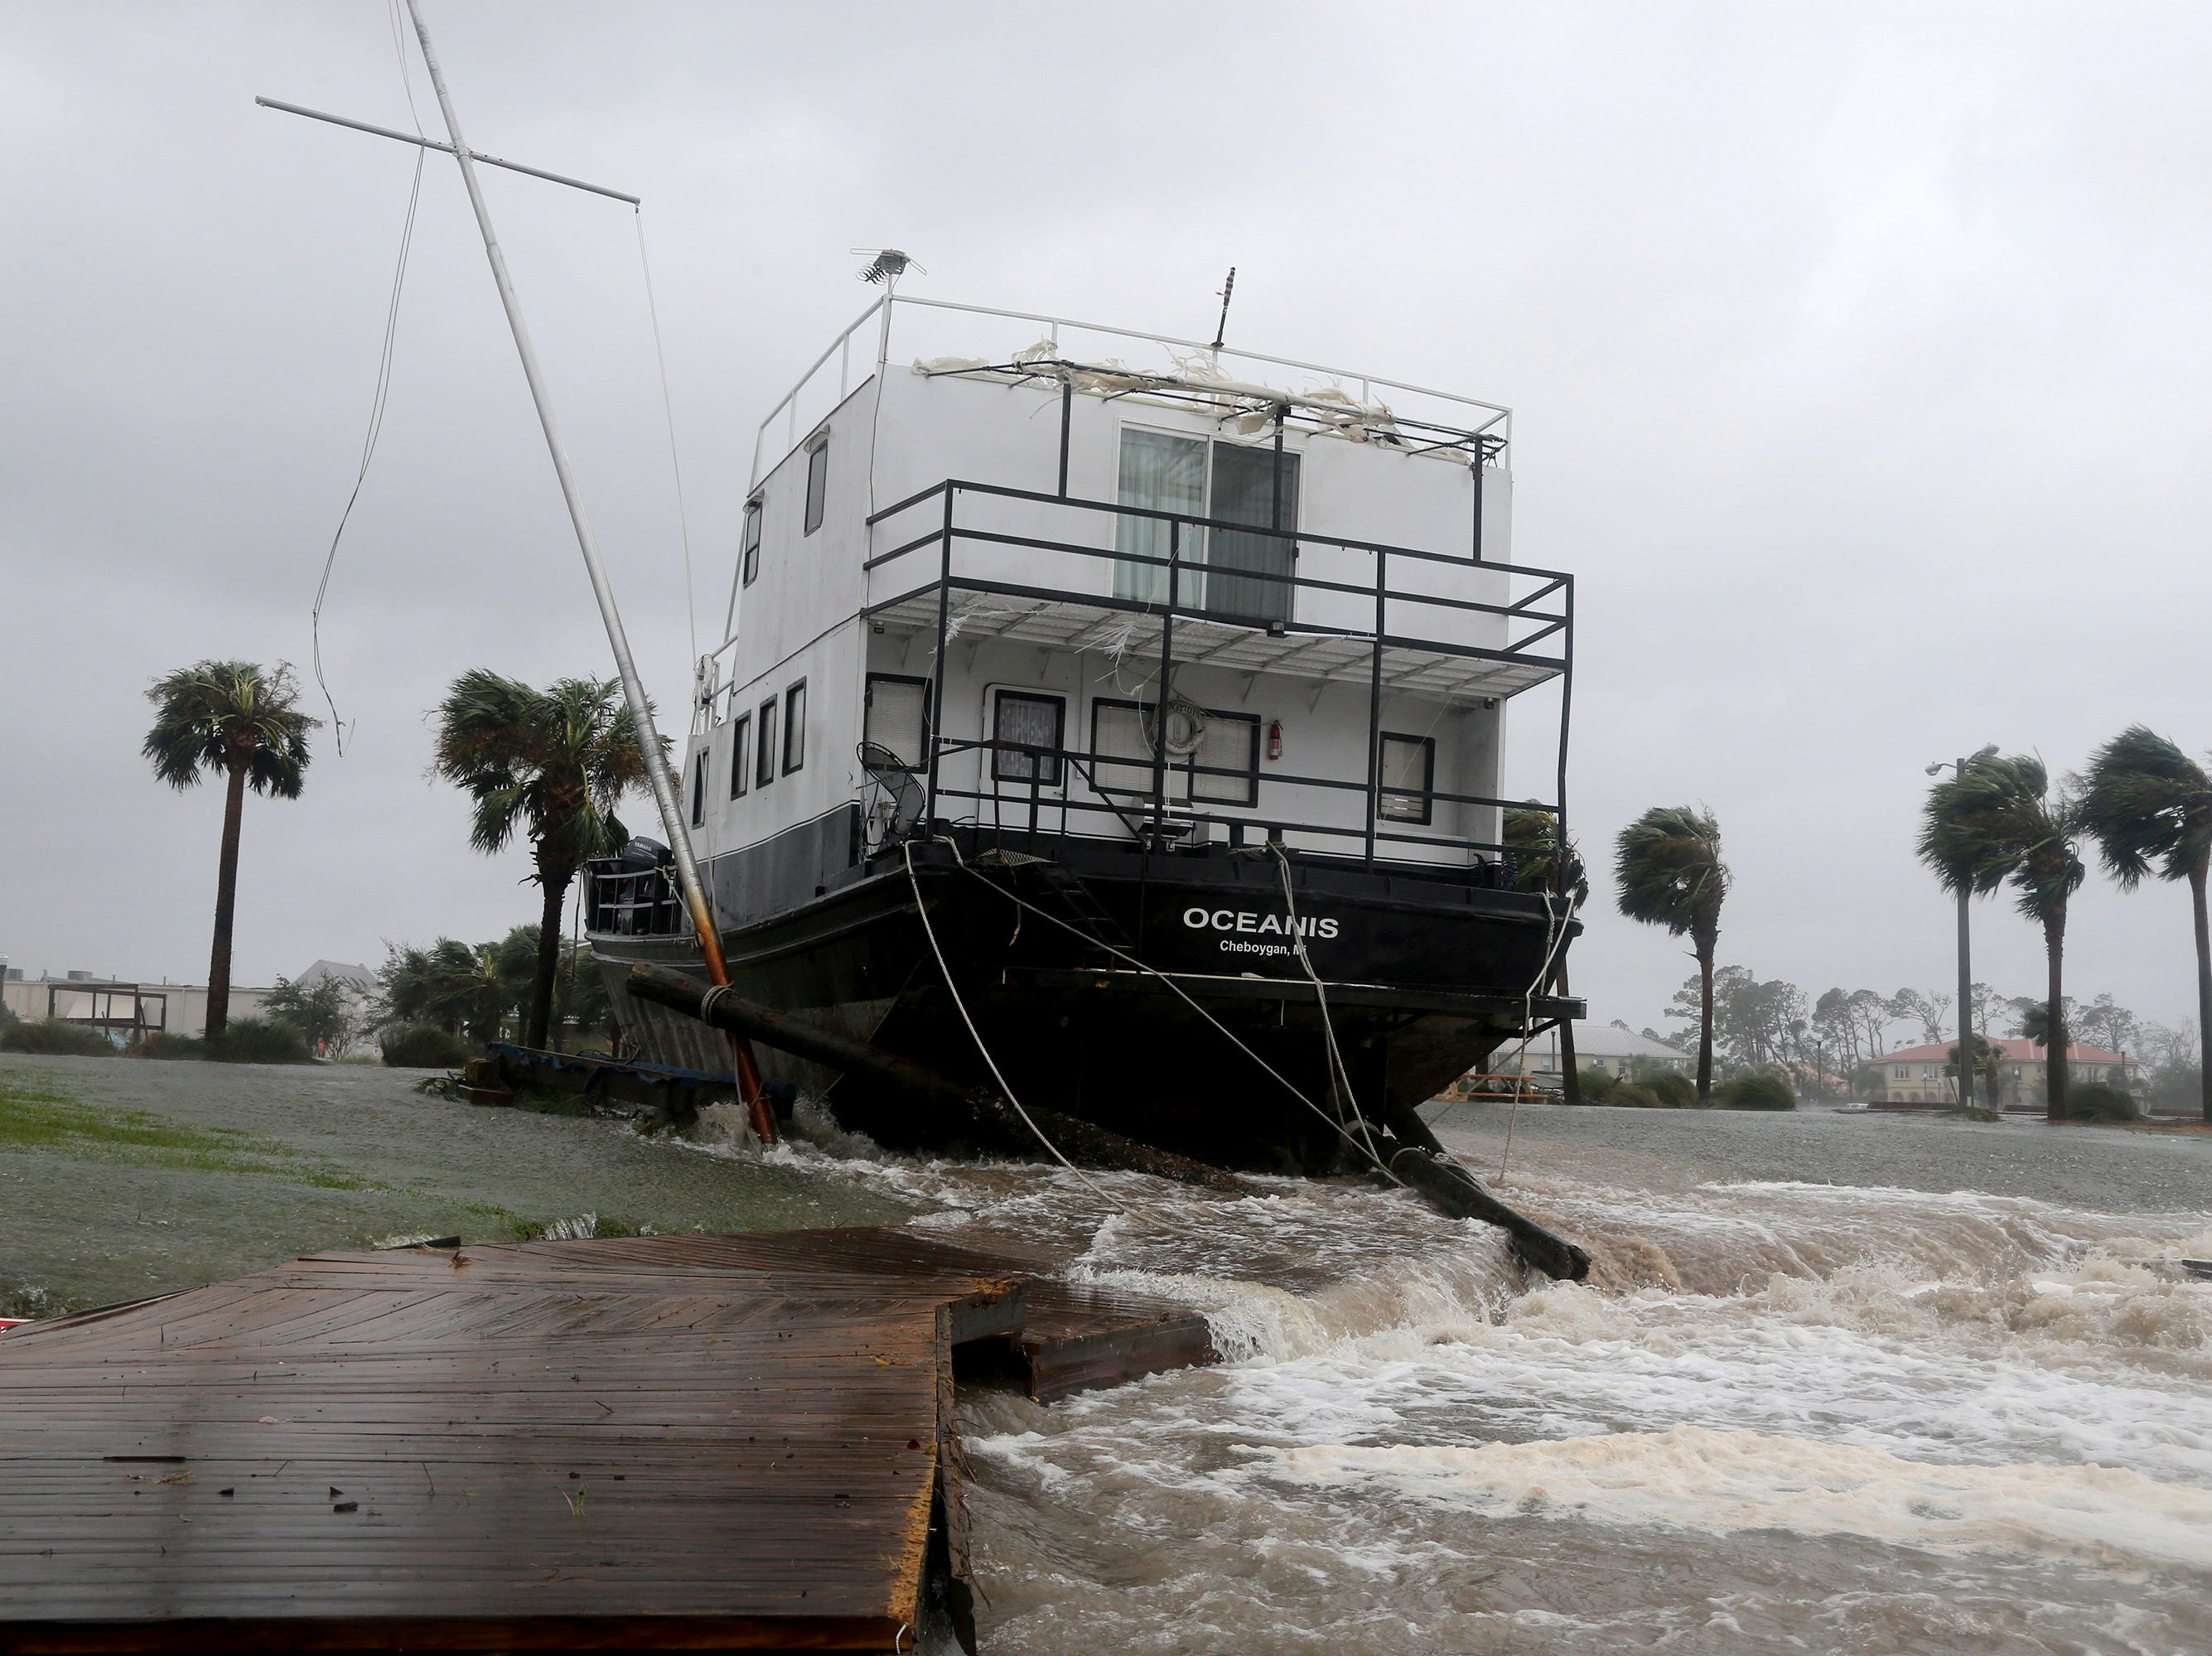 The Oceanis is grounded by a tidal surge at the Port St. Joe Marina, Wednesday, Oct. 10, 2018 in Port St. Joe, Fla. Supercharged by abnormally warm waters in the Gulf of Mexico, Hurricane Michael slammed into the Florida Panhandle with terrifying winds of 155 mph Wednesday, splintering homes and submerging neighborhoods.